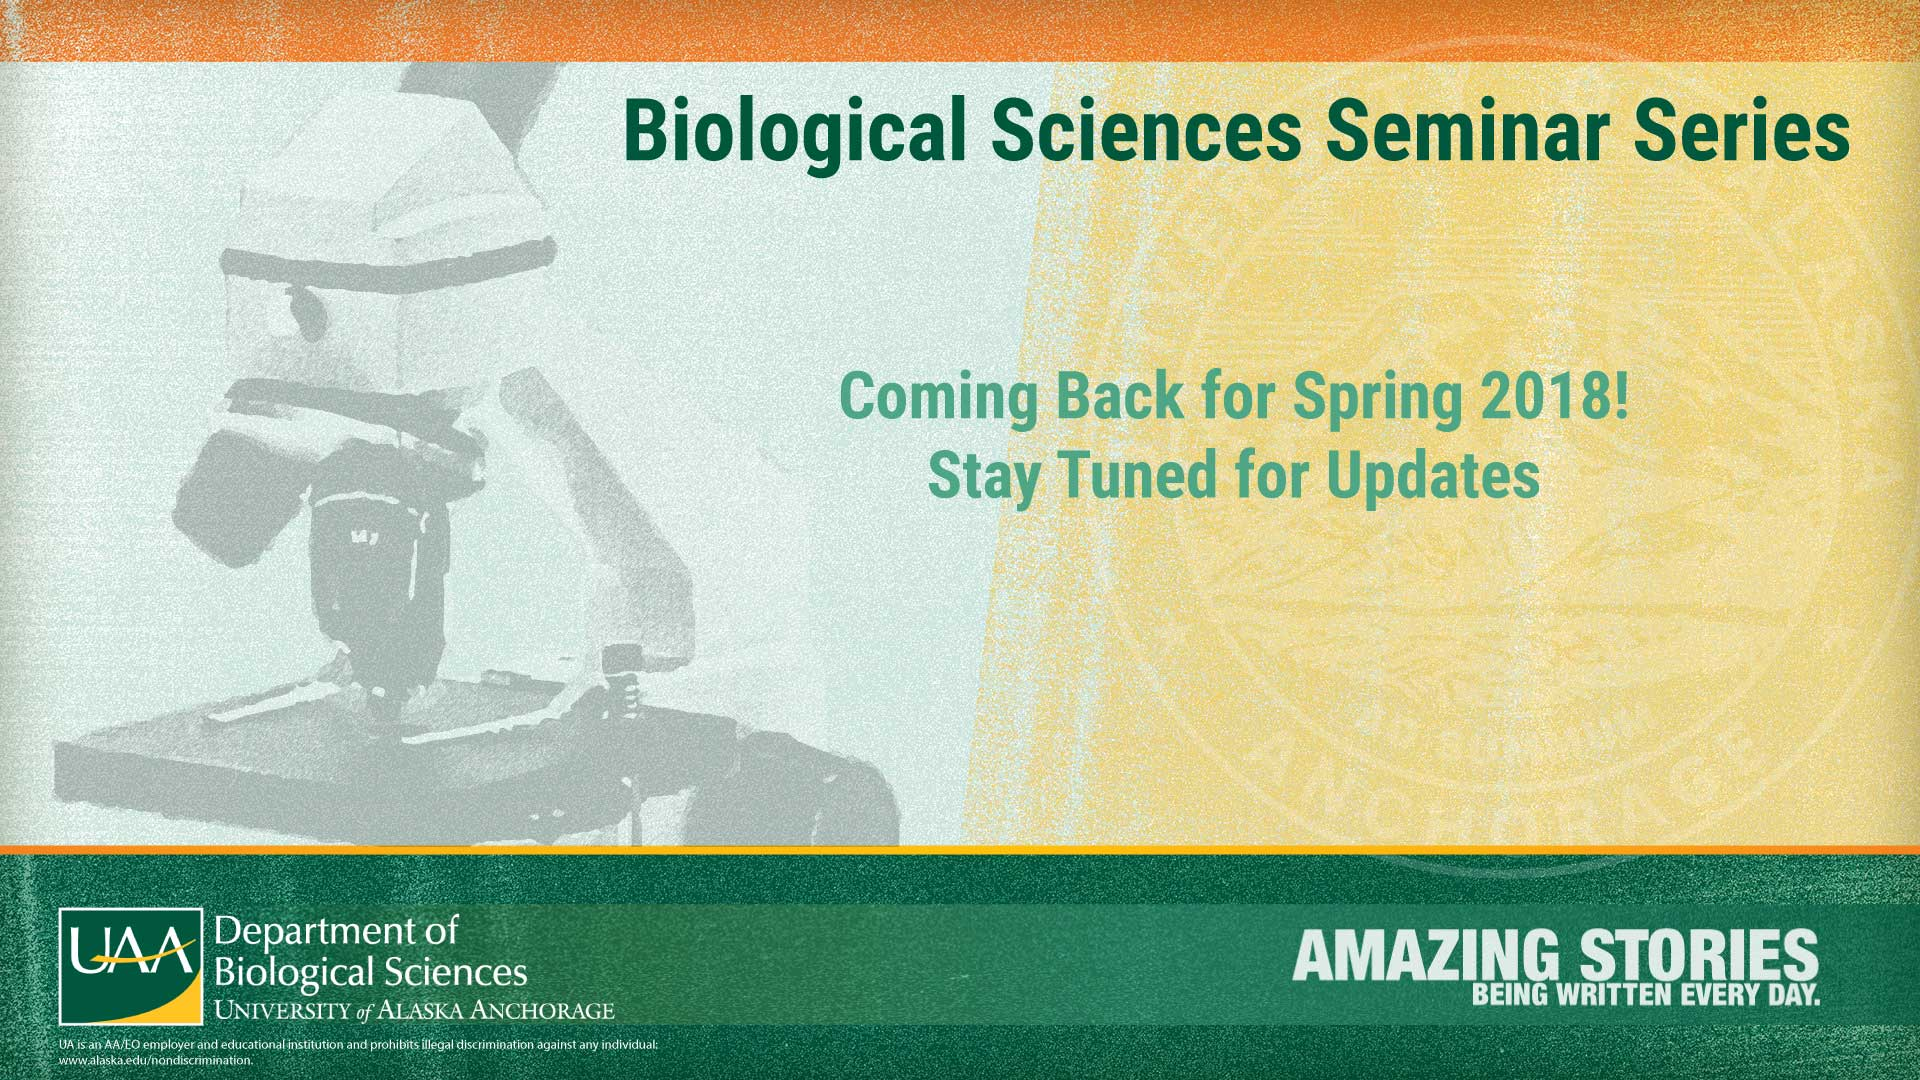 Biological Sciences Seminar